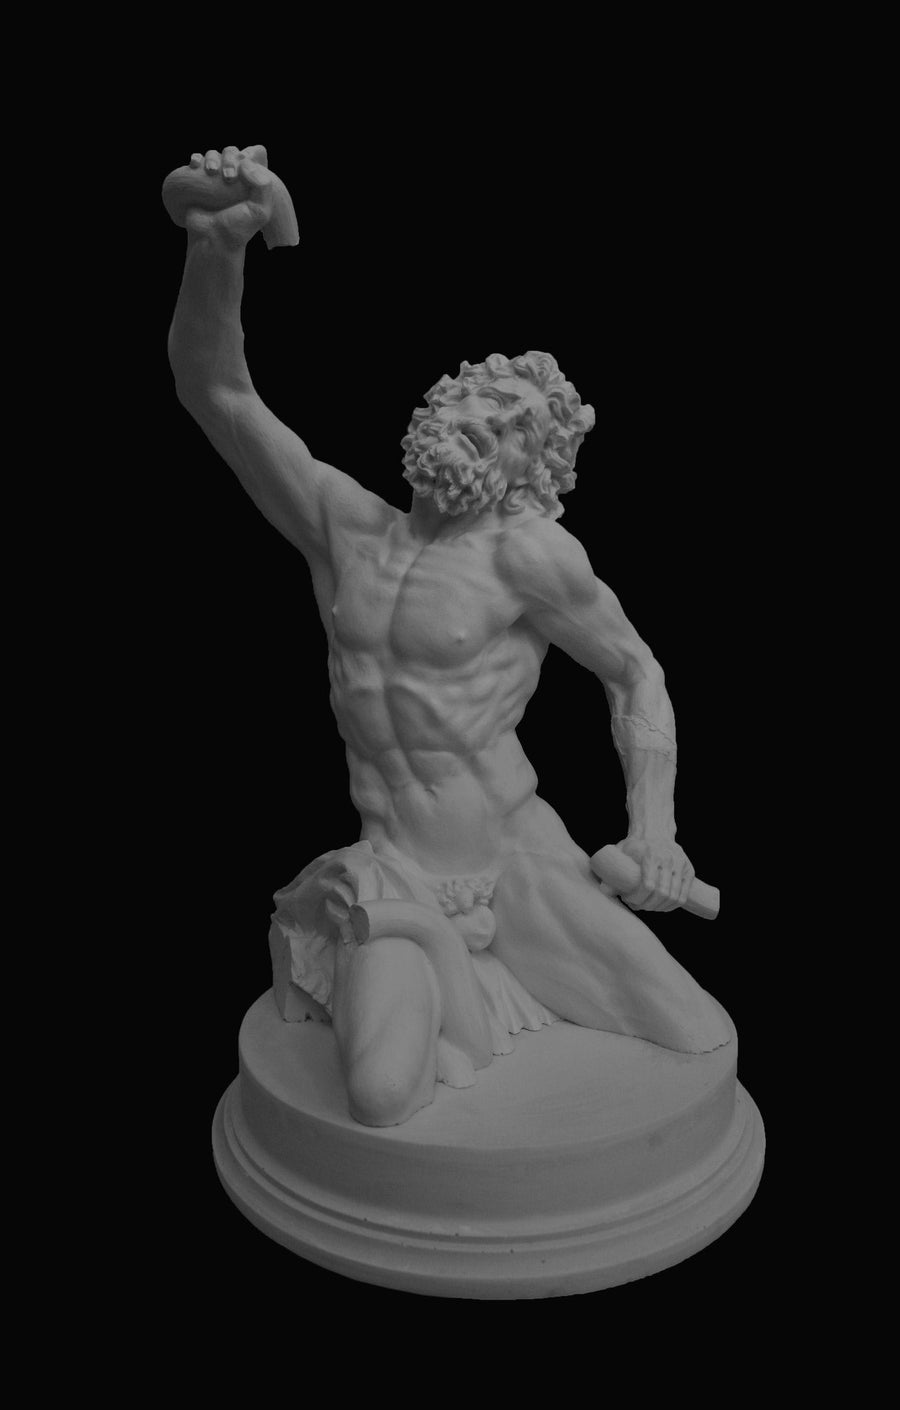 photo with black background of plaster cast sculpture of partially nude male figure, namely Laocoon, kneeling and one arm down and one raised and curly hair and beard